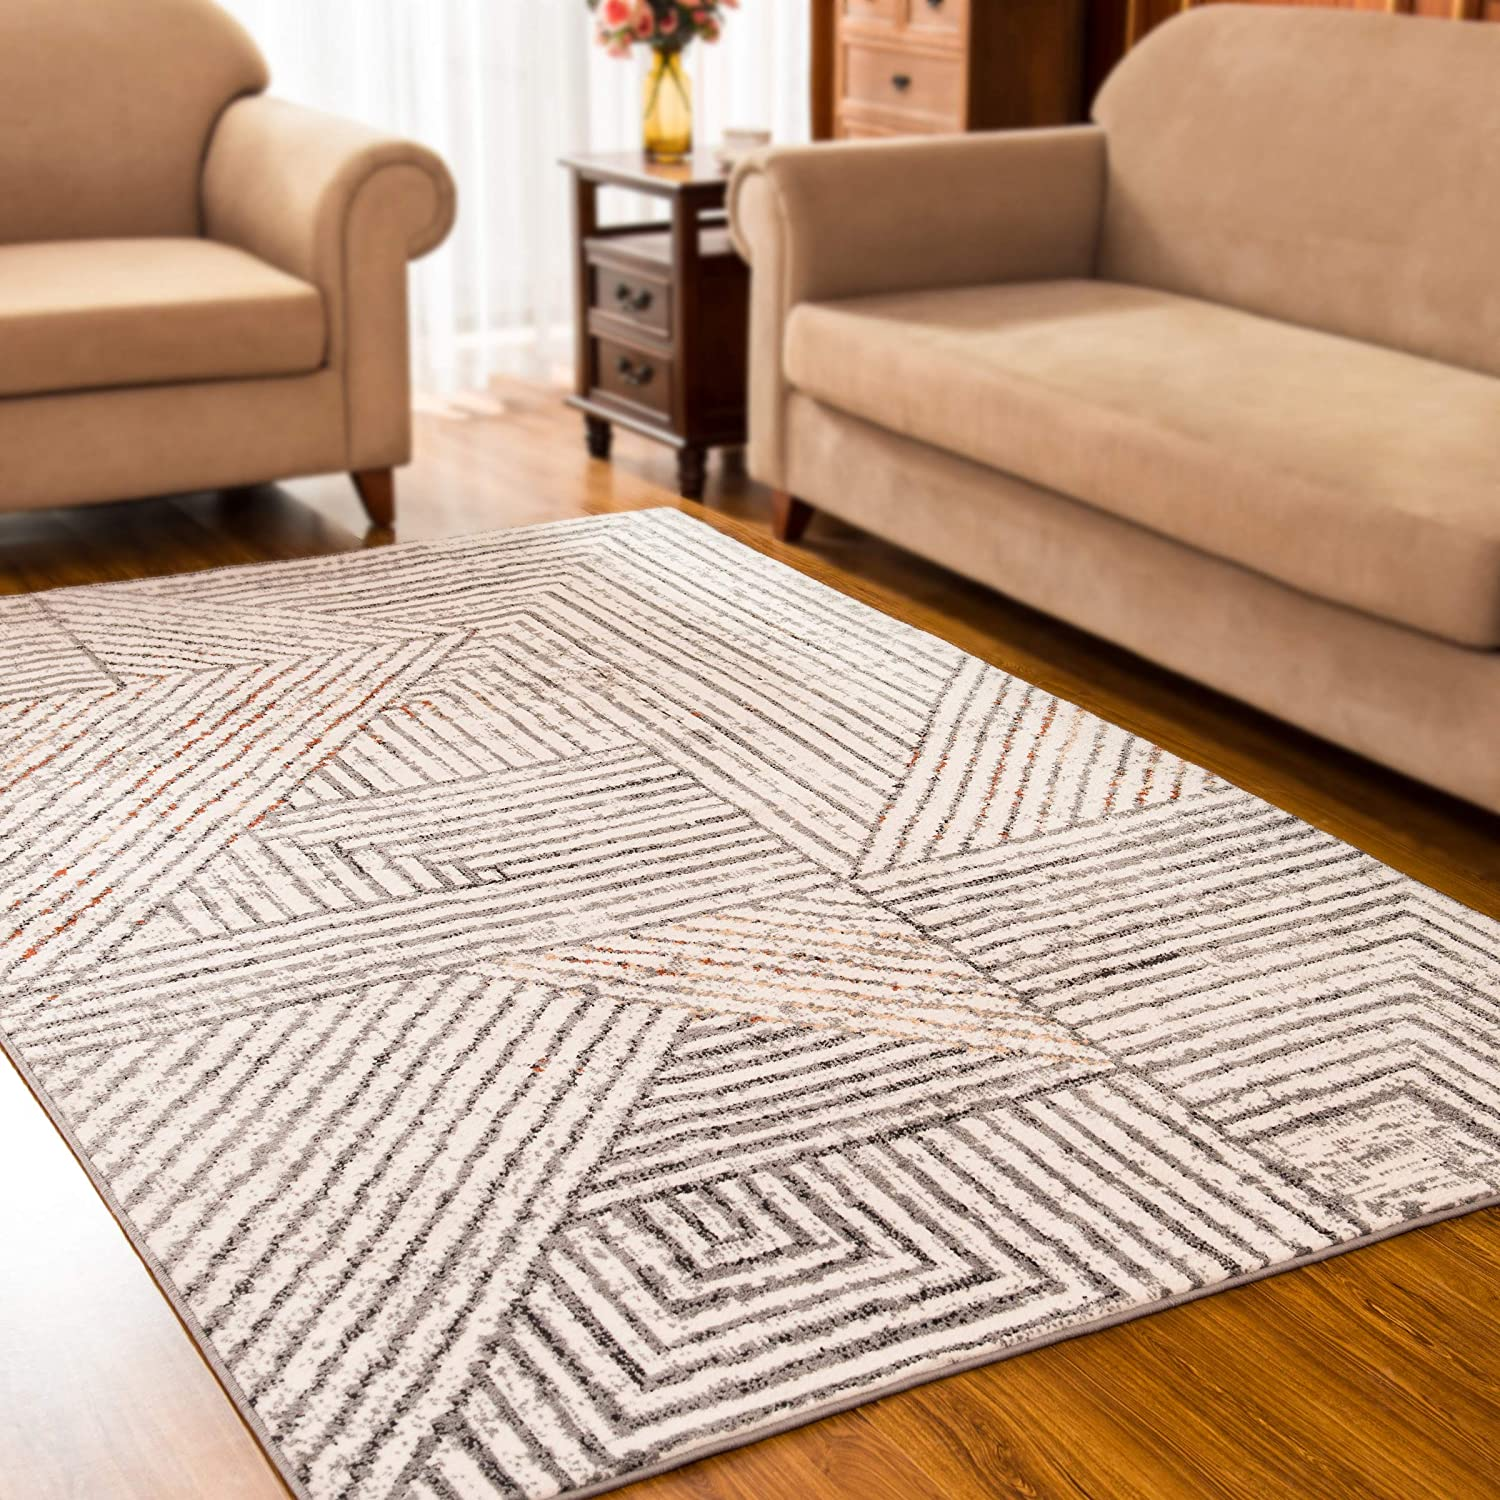 subrtex Geometric Area Rugs for Living Room Bohemian Home Rug Short Plush Turkish Area Rug Soft Indoor Carpets for Bedrooms (4'× 6', White Striped)